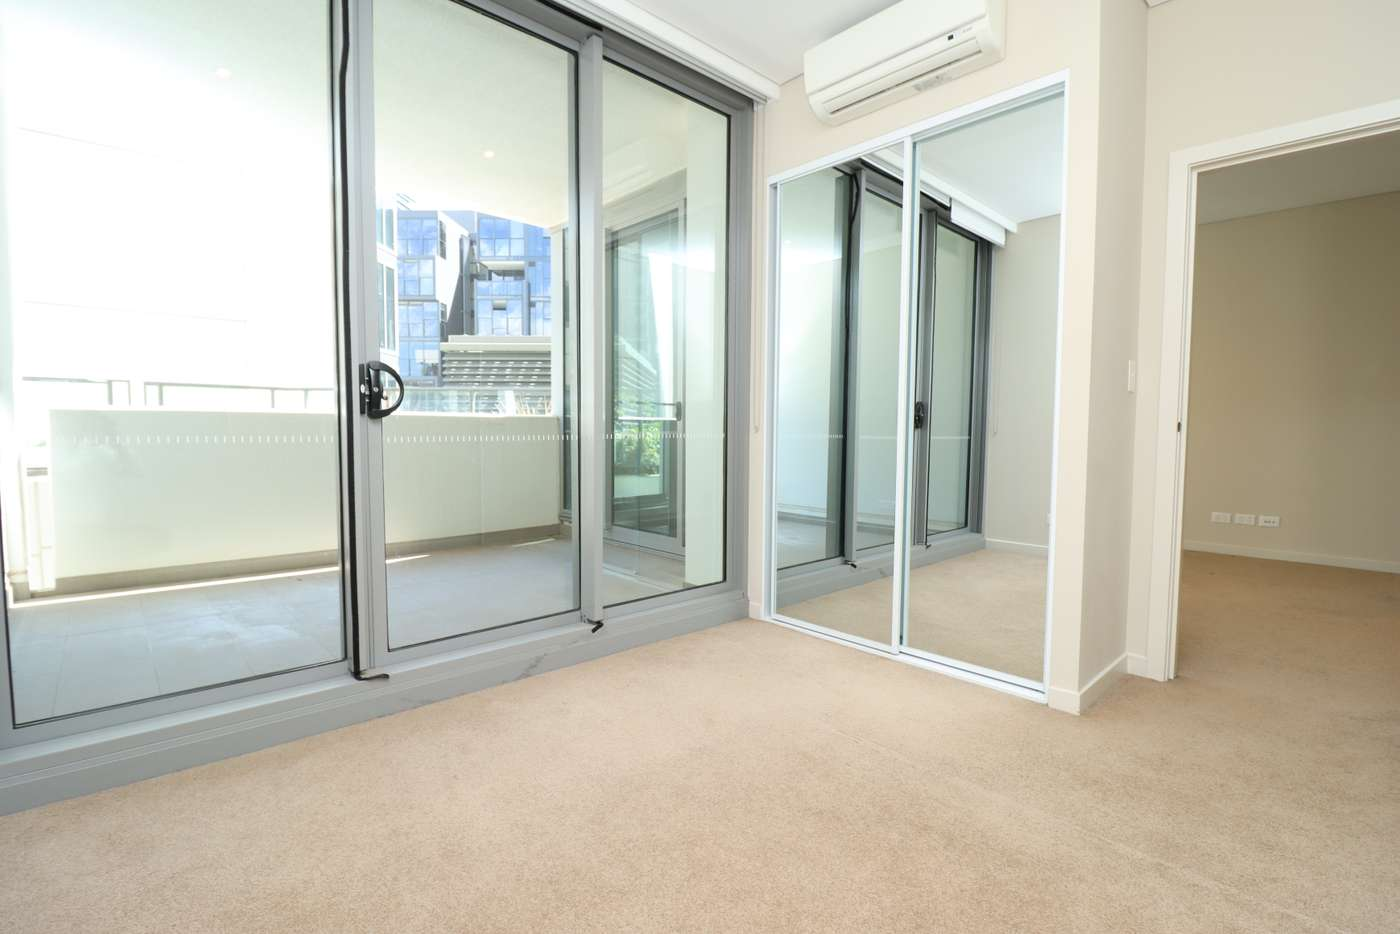 Seventh view of Homely apartment listing, 613/18 Footbridge Boulevard, Wentworth Point NSW 2127